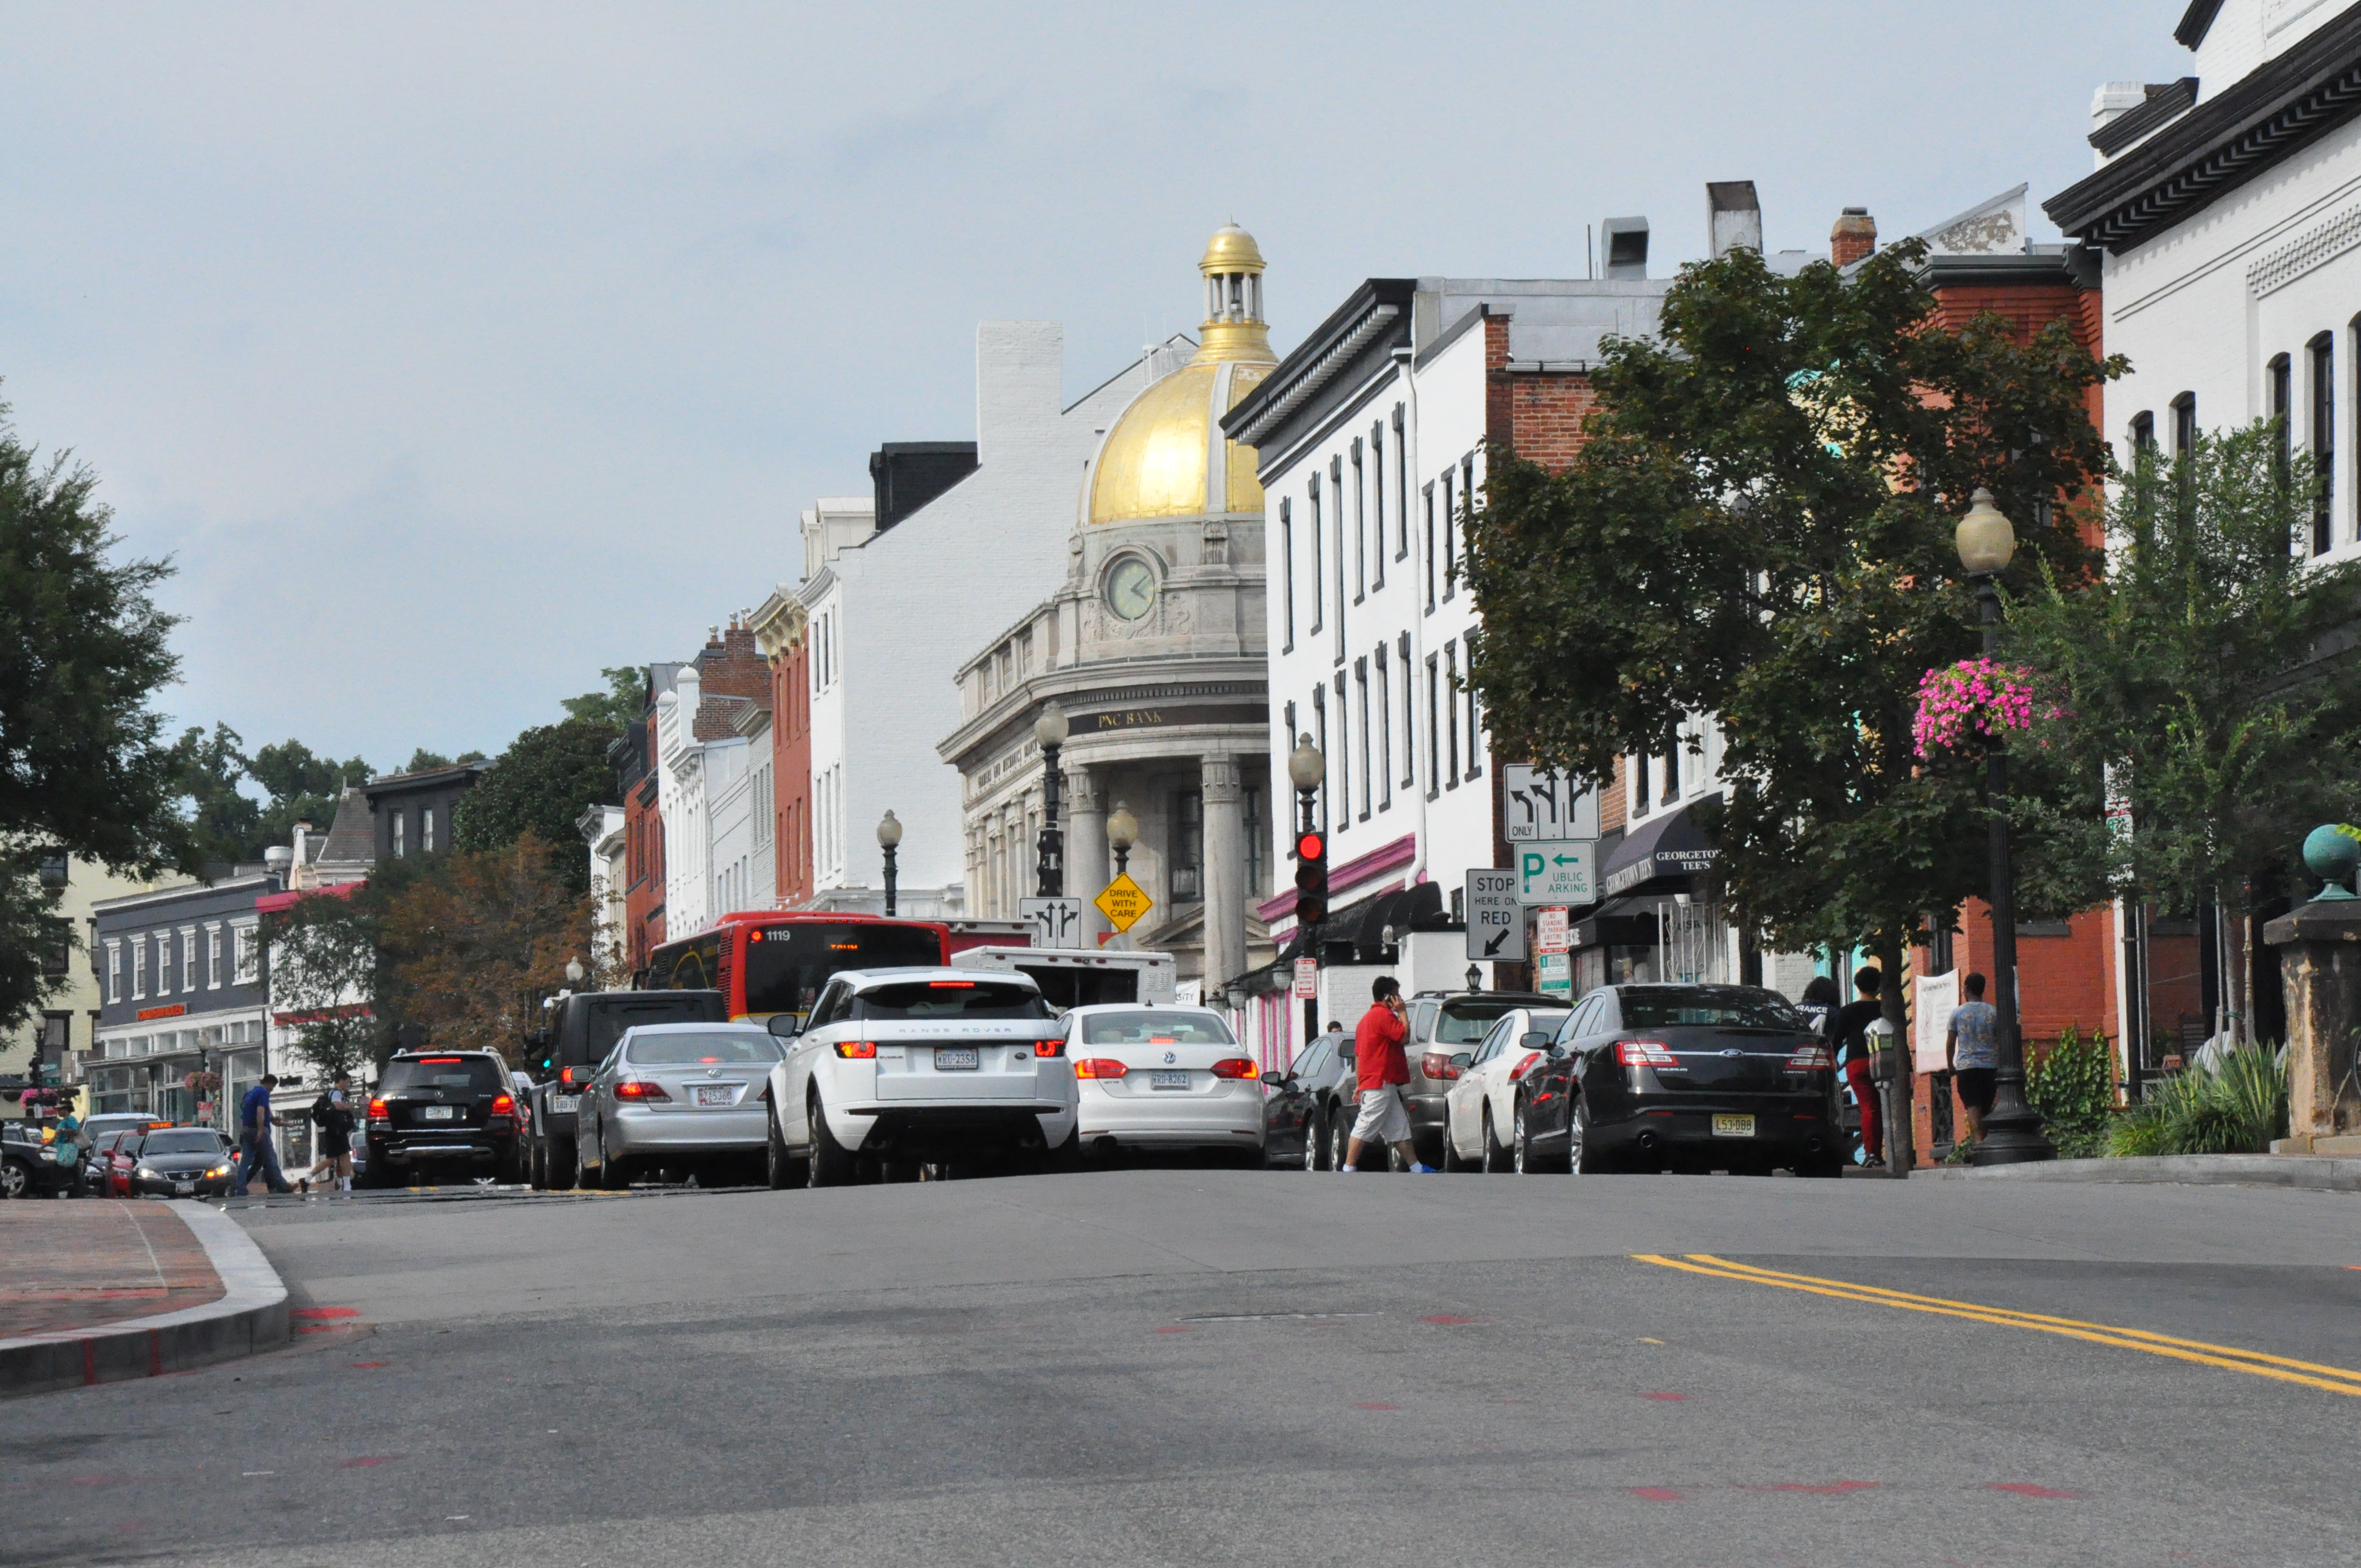 Georgetown widens sidewalks for weekend foot traffic